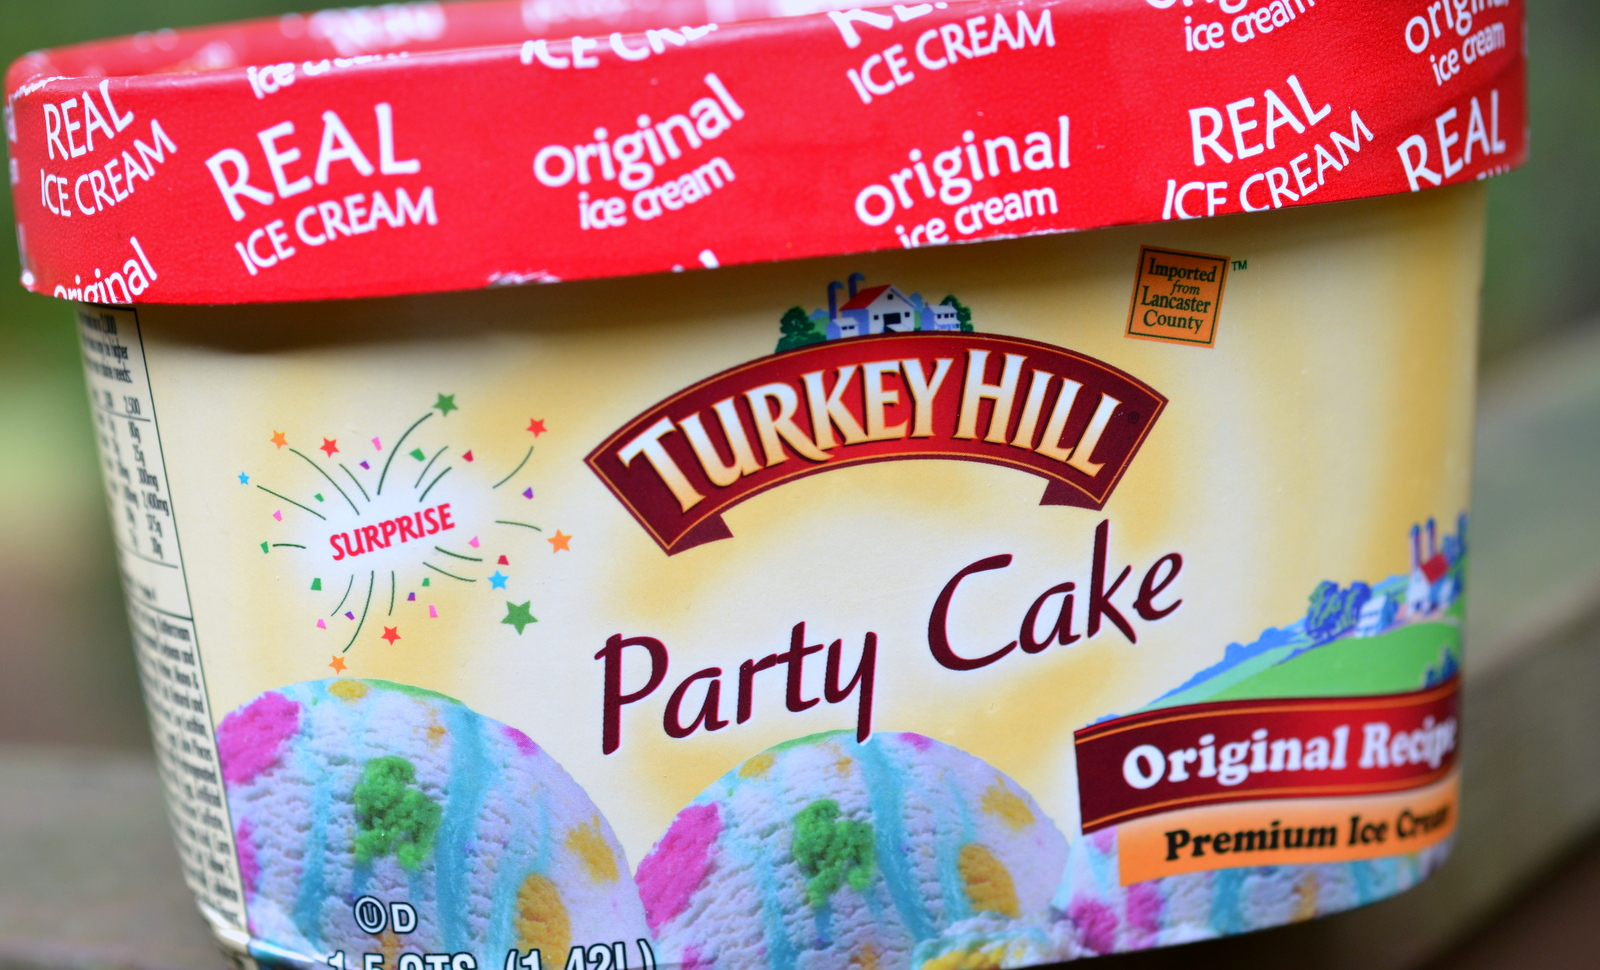 After Trying Some Of Turkey Hills Limited Edition Pumpkin Pie As Well Being Tipped Off By A Fellow Blogger I Decided To Give Their Party Cake Taste